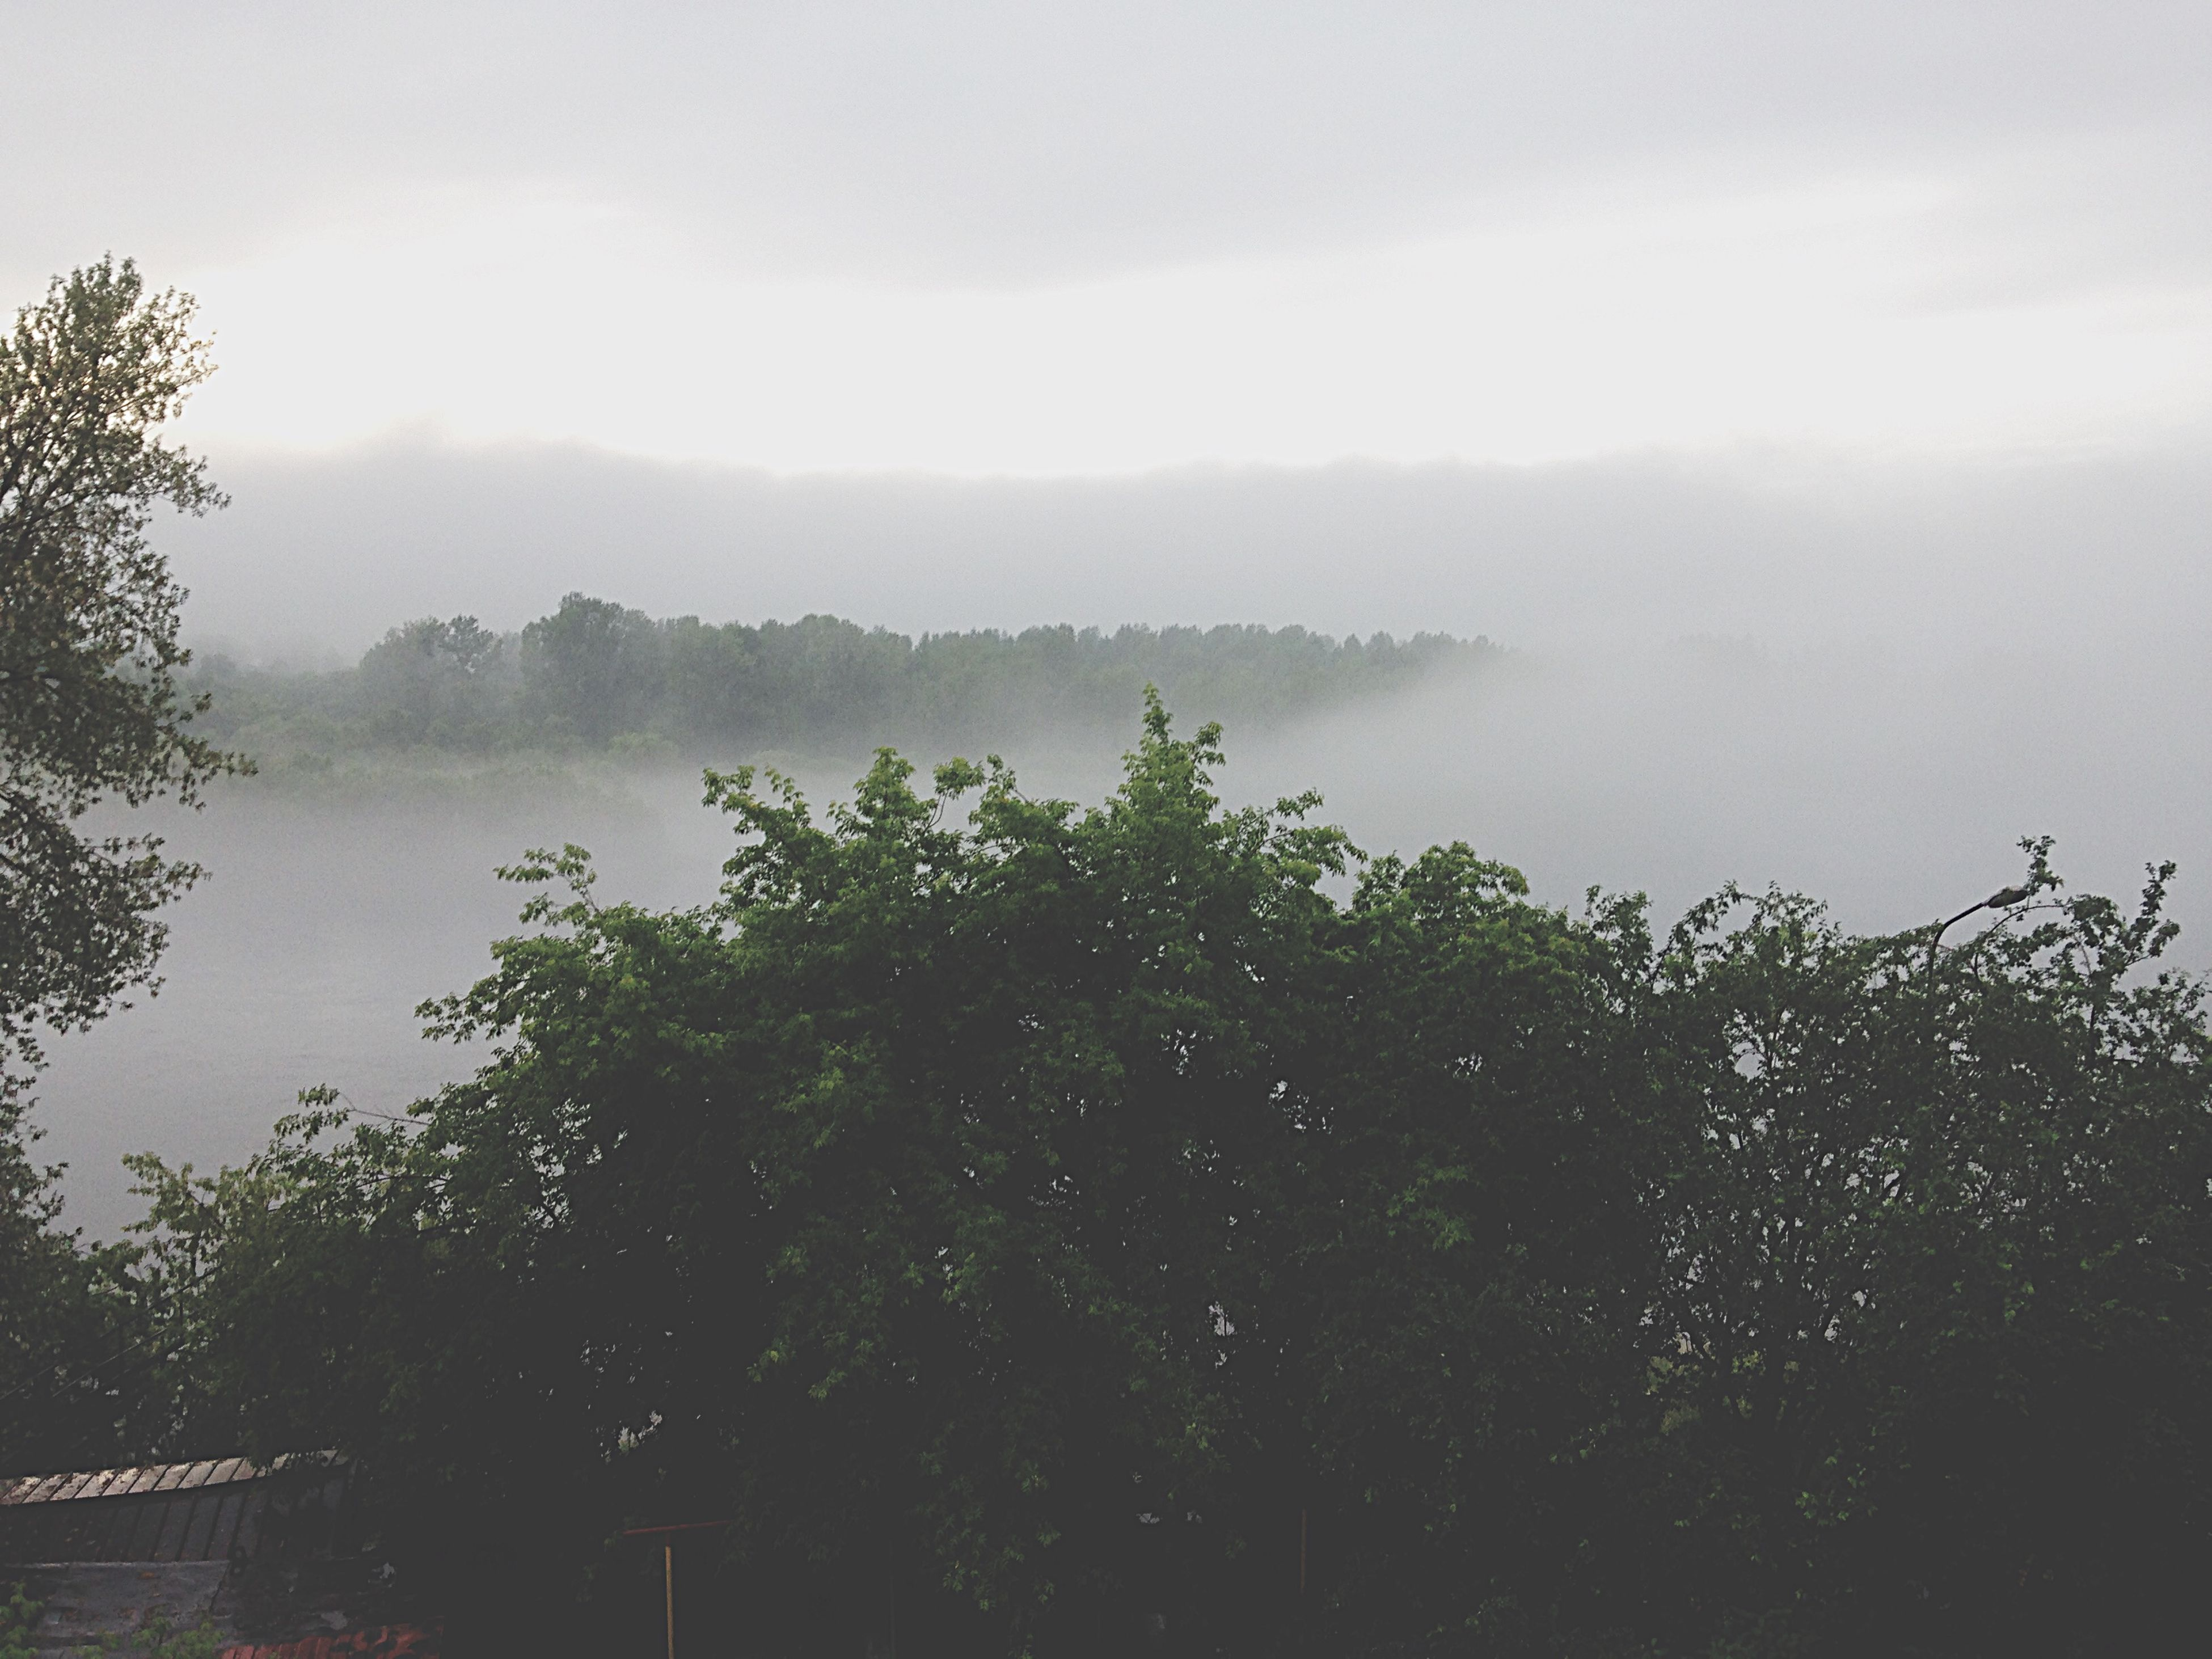 tree, sky, tranquil scene, tranquility, scenics, beauty in nature, growth, nature, fog, mountain, landscape, cloud - sky, plant, idyllic, non-urban scene, foggy, day, outdoors, water, weather